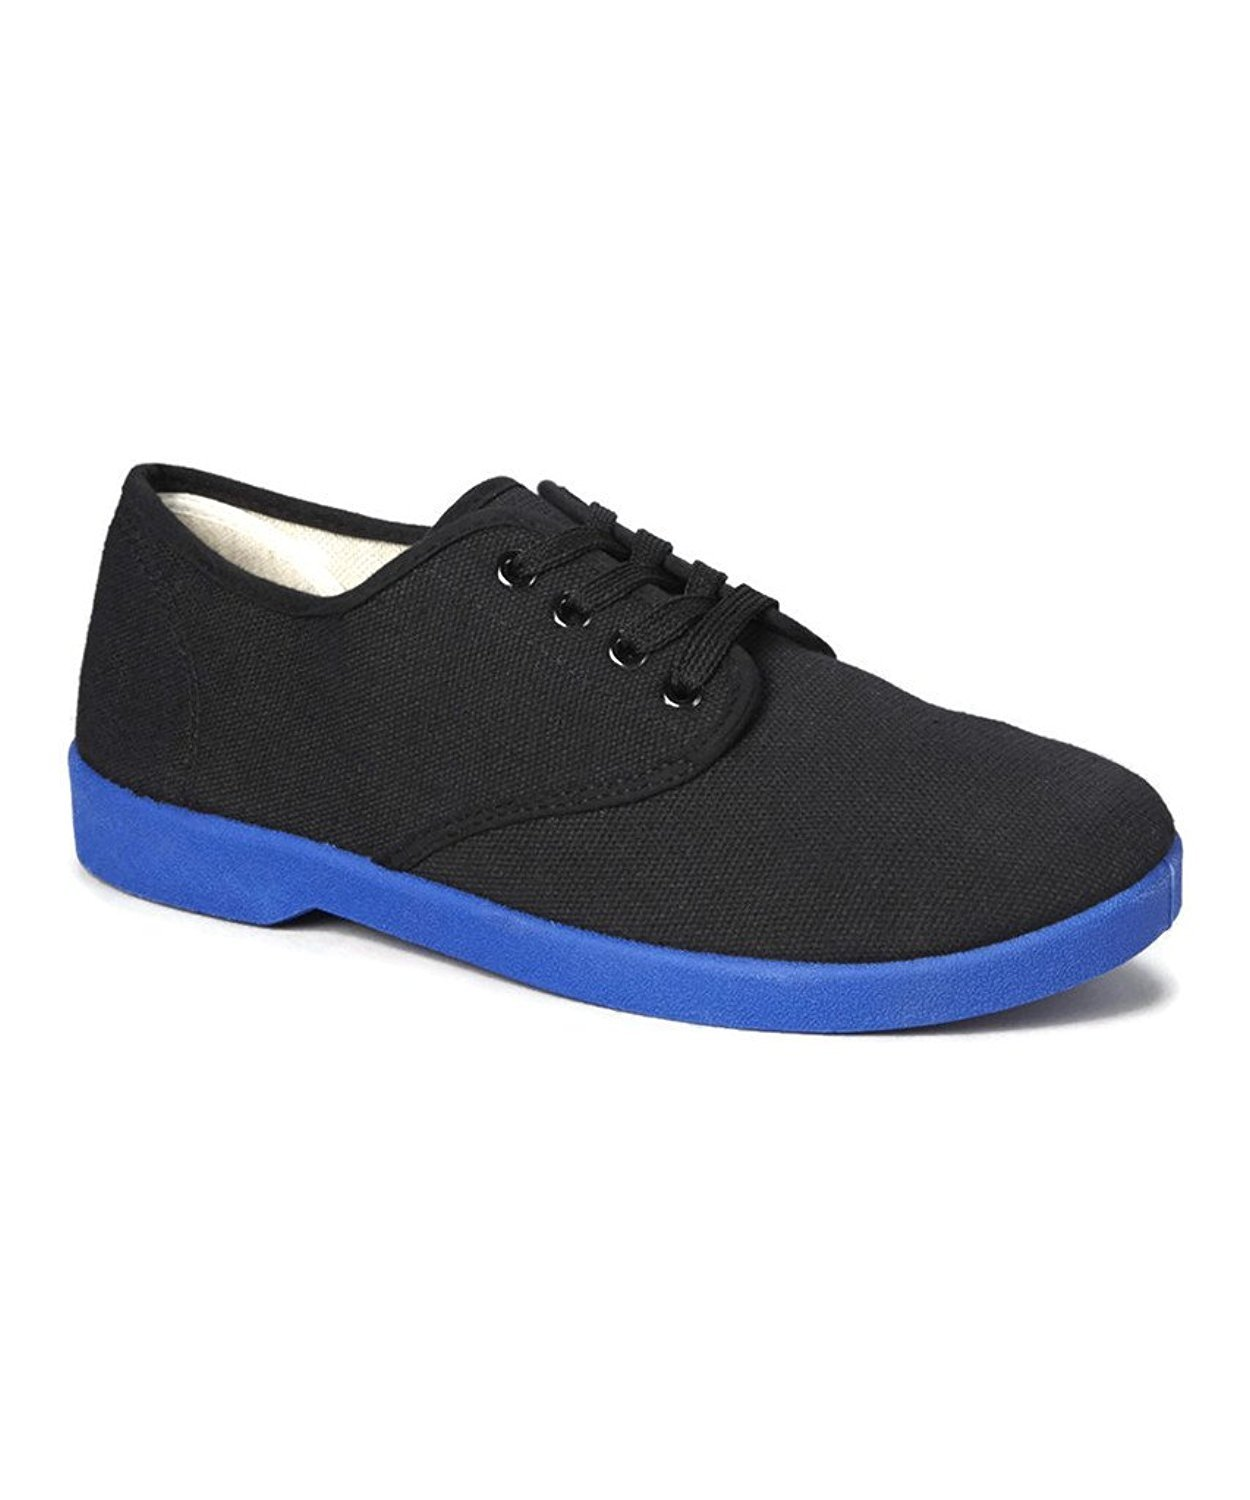 zig zag s canvas oxford shoes blue sole black navy